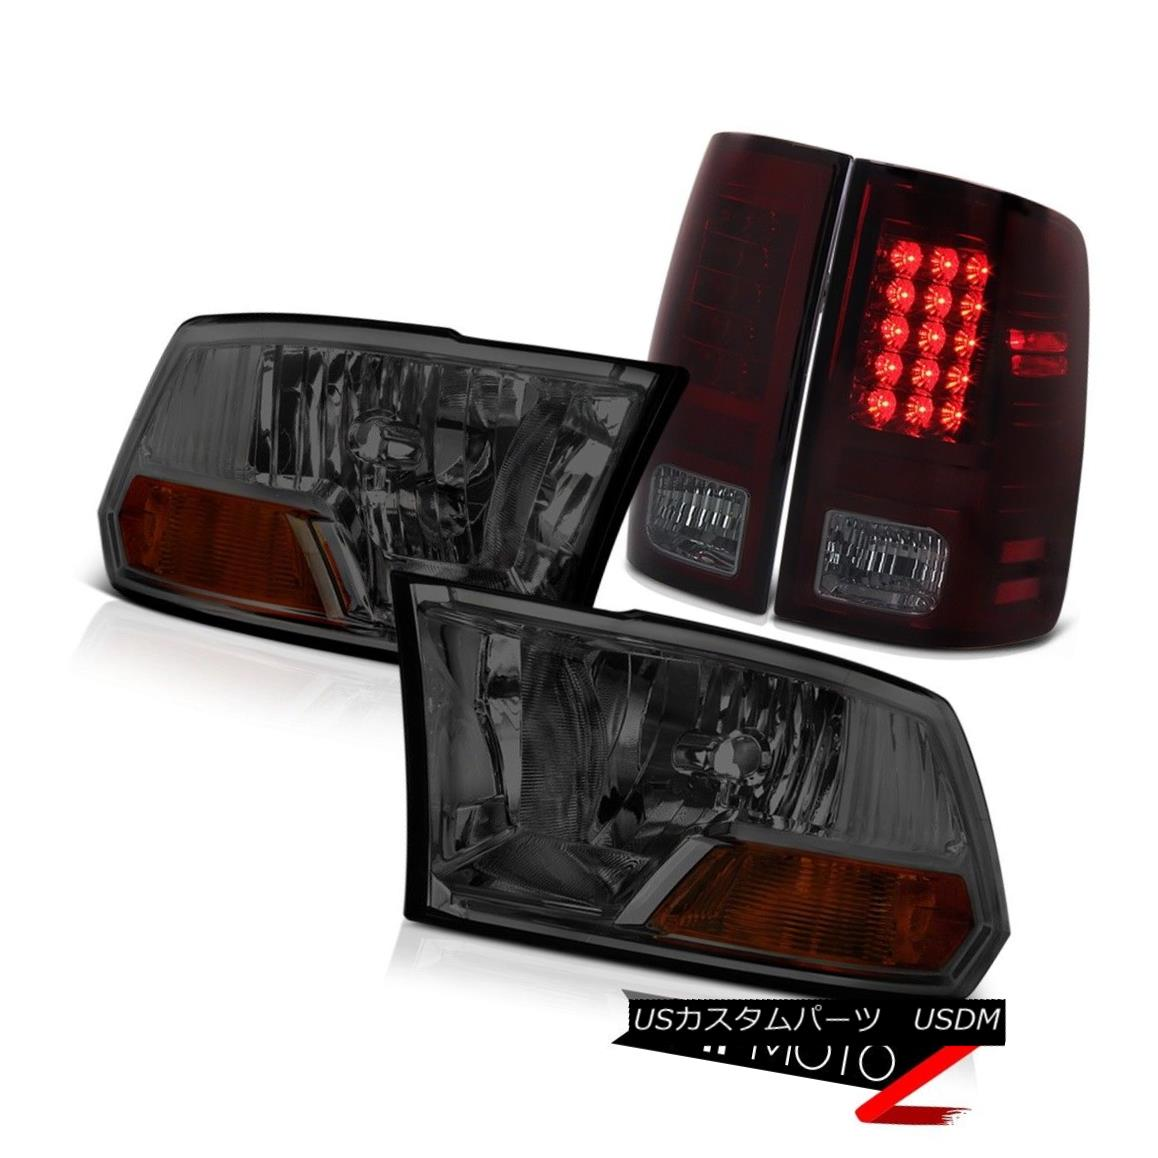 テールライト 2009-2018 Dodge Ram Smoke Red LED Tail Light Headlight LH+RH 2010 2011 2012 2013 2009-2018 Dodge Ram SmokeレッドLEDテールライトヘッドライトLH + RH 2010 2011 2012 2013